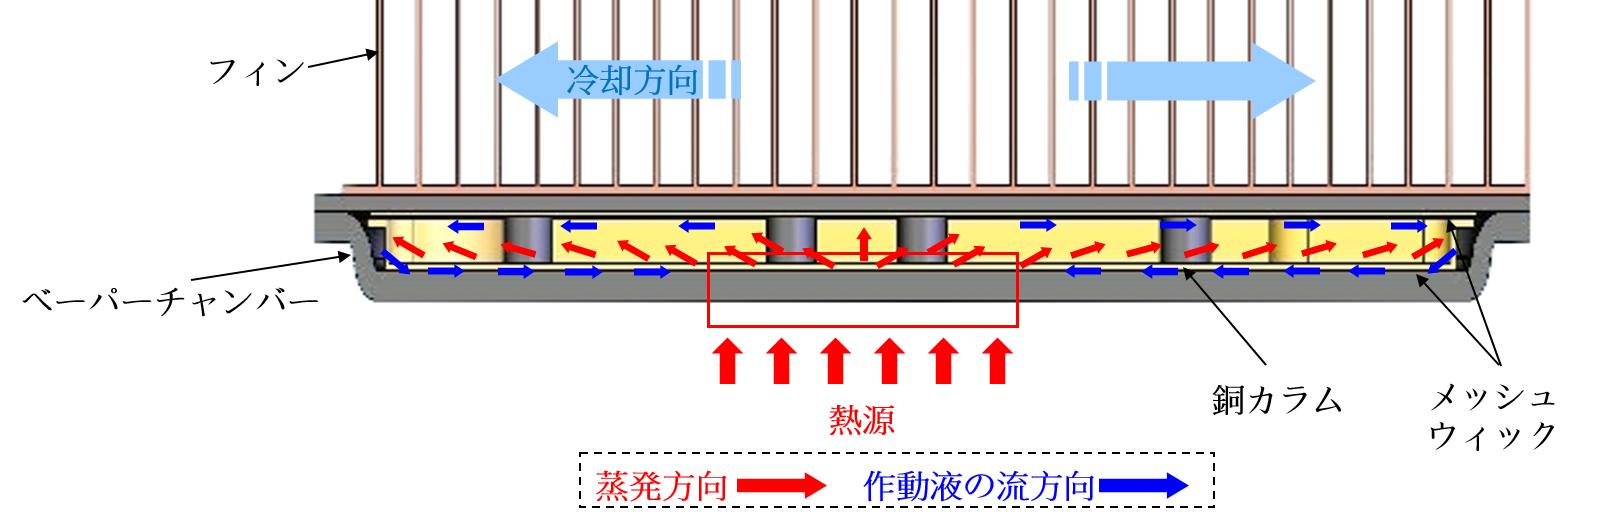 vapor_chamber_structure.png